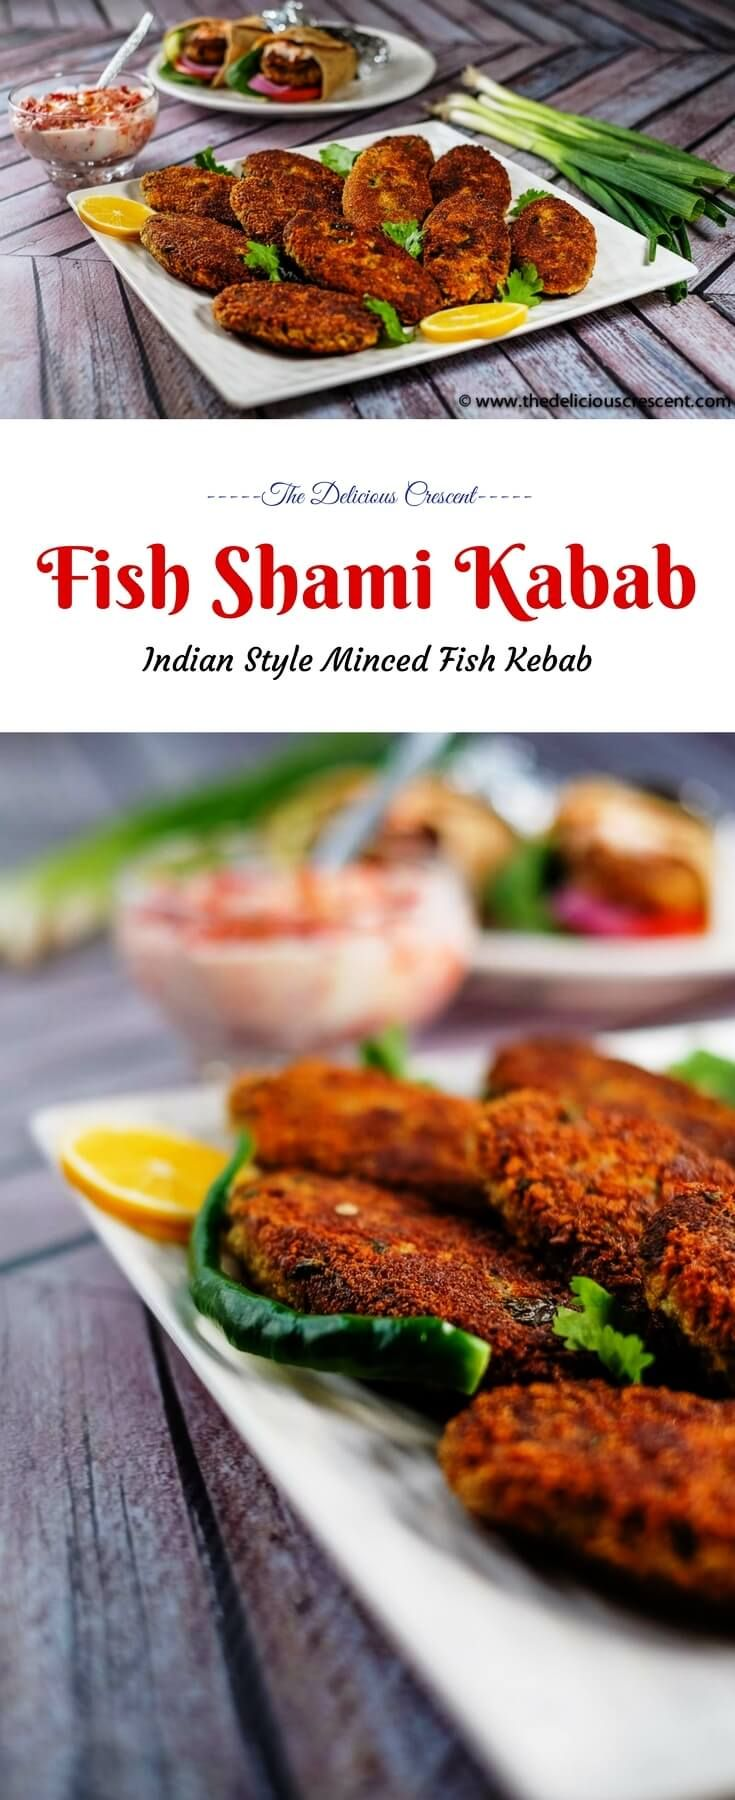 Fish Shami Kabab - crispy on the outside, soft and spicy in the center, these scrumptious flavor rich patties are an excellent snack or appetizer. And they provide a good amount of protein and healthy fats.  #shami #kabab #salmon #appetizer #lowcarb #Indianrecipes #easyrecipe #freezerfriendly #fish #snack  via @TDCrescent